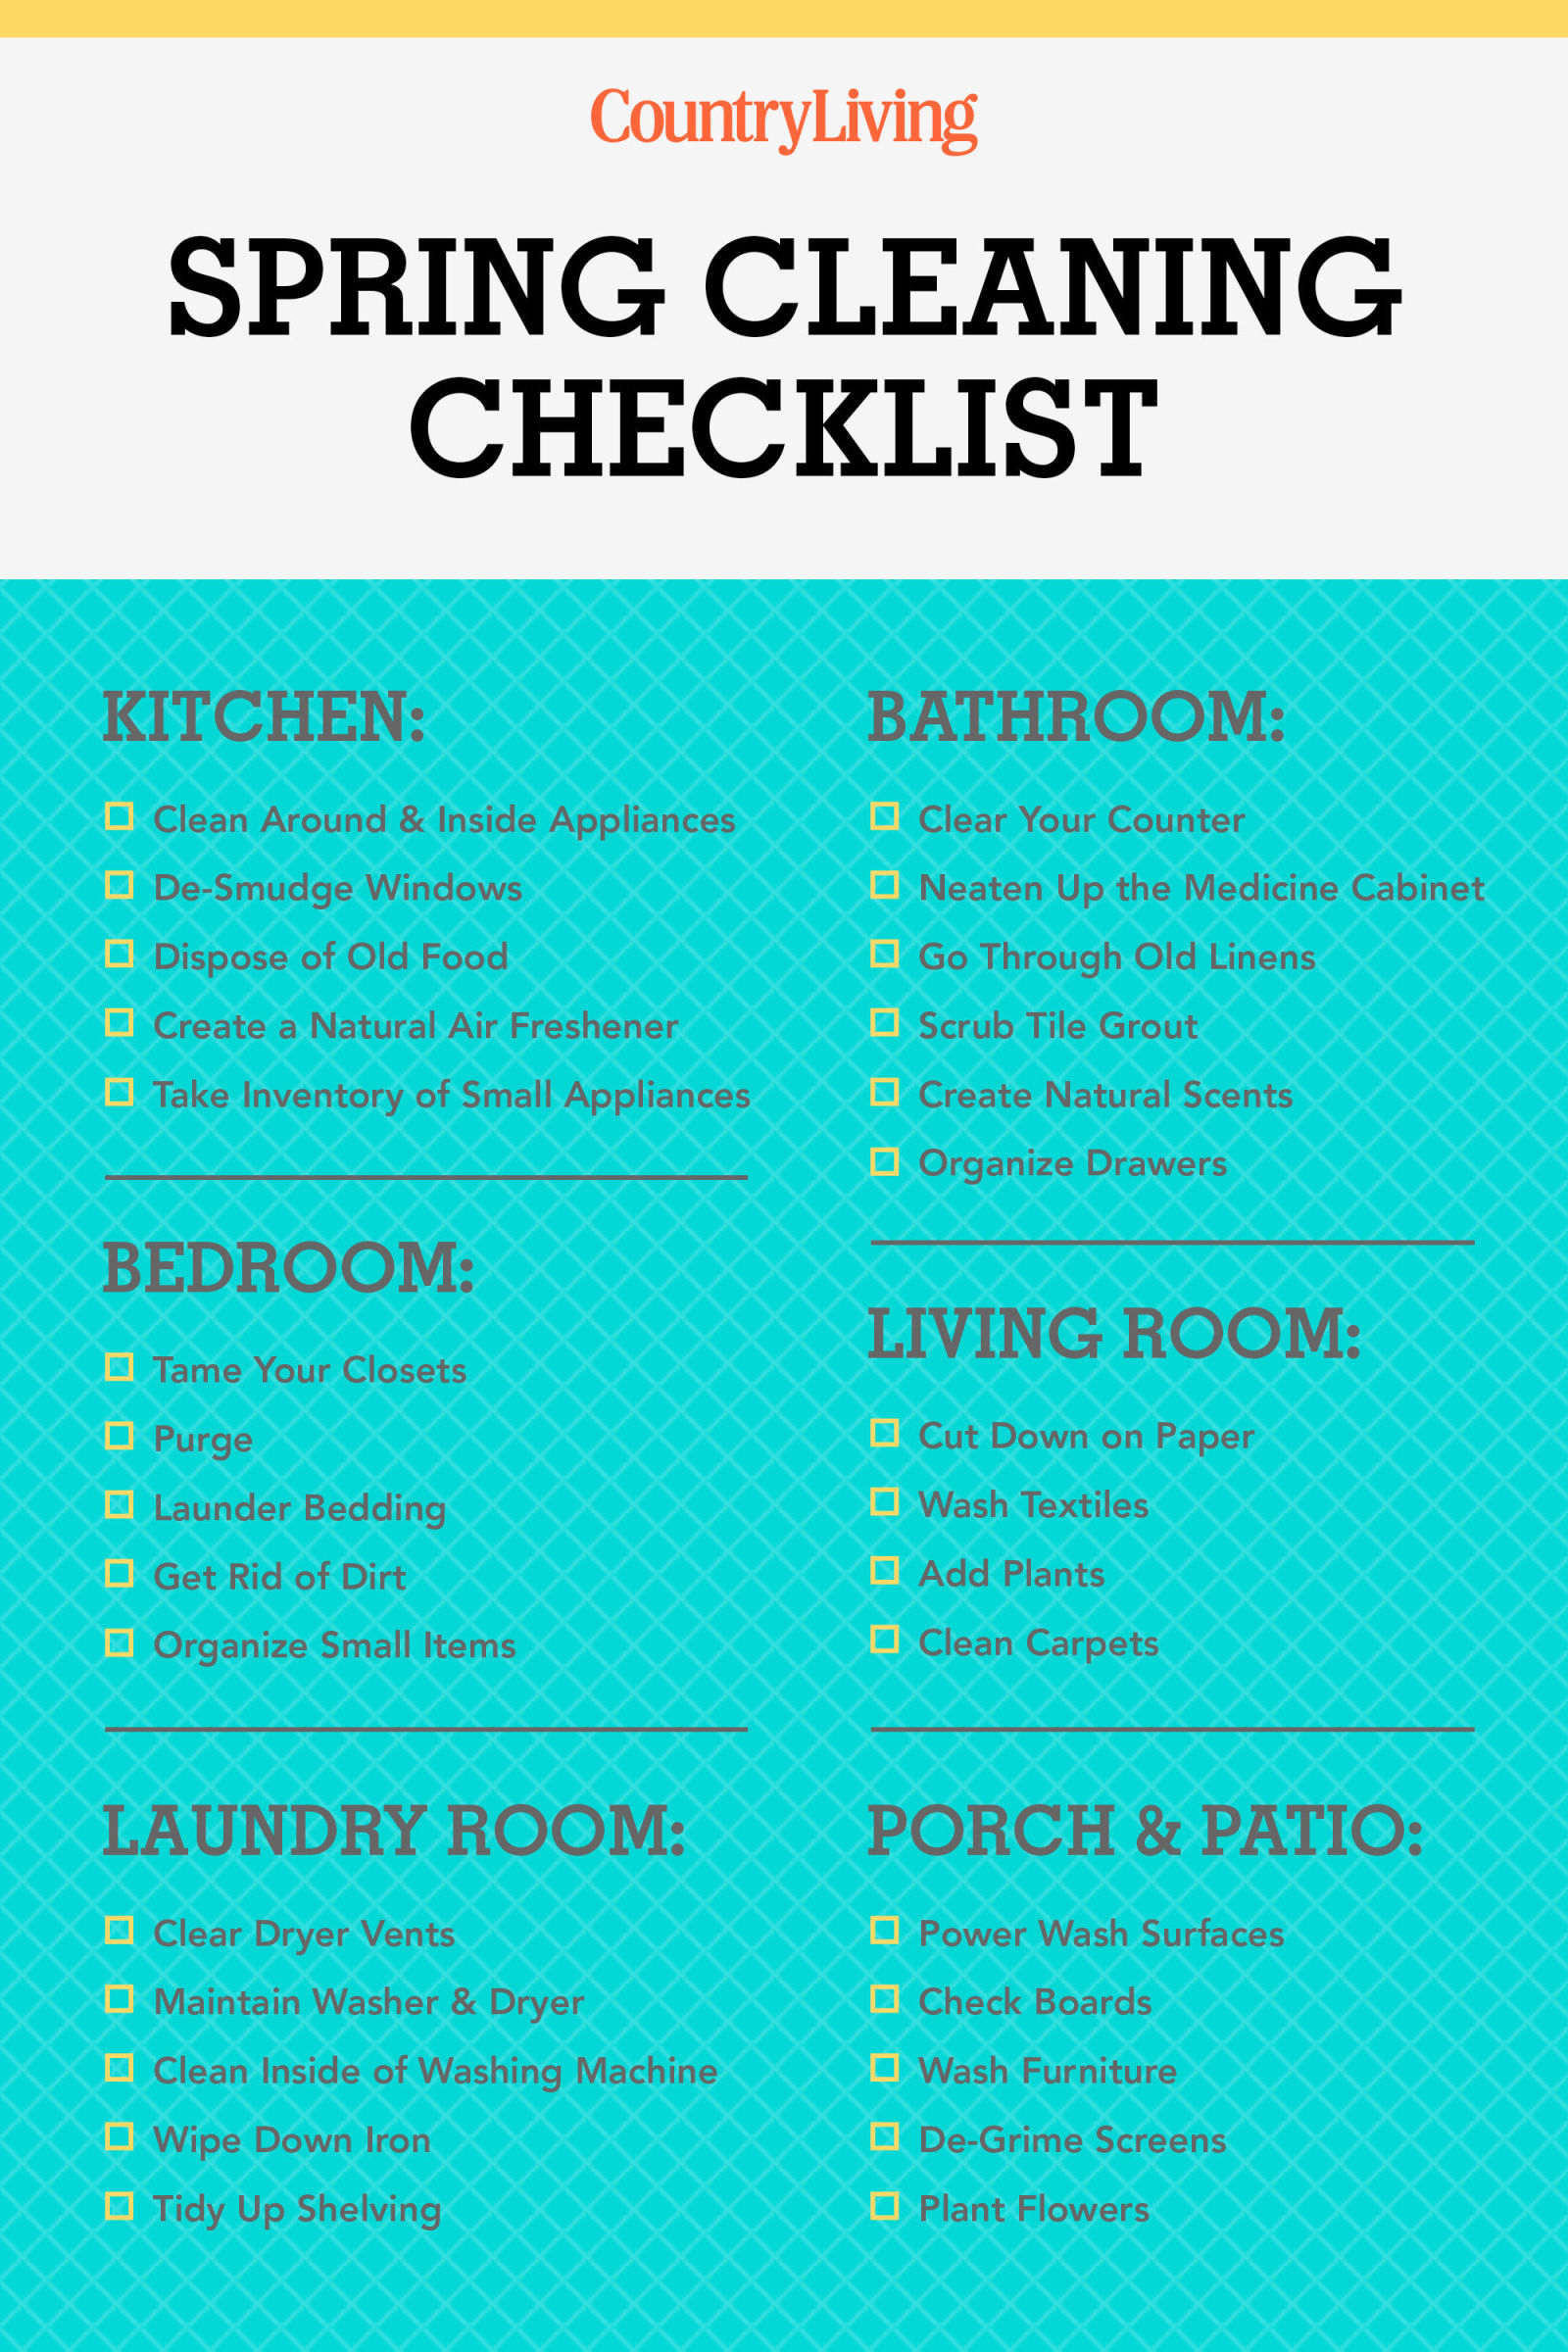 Spring Cleaning Checklist 30+ spring cleaning checklist & tips - how to spring clean